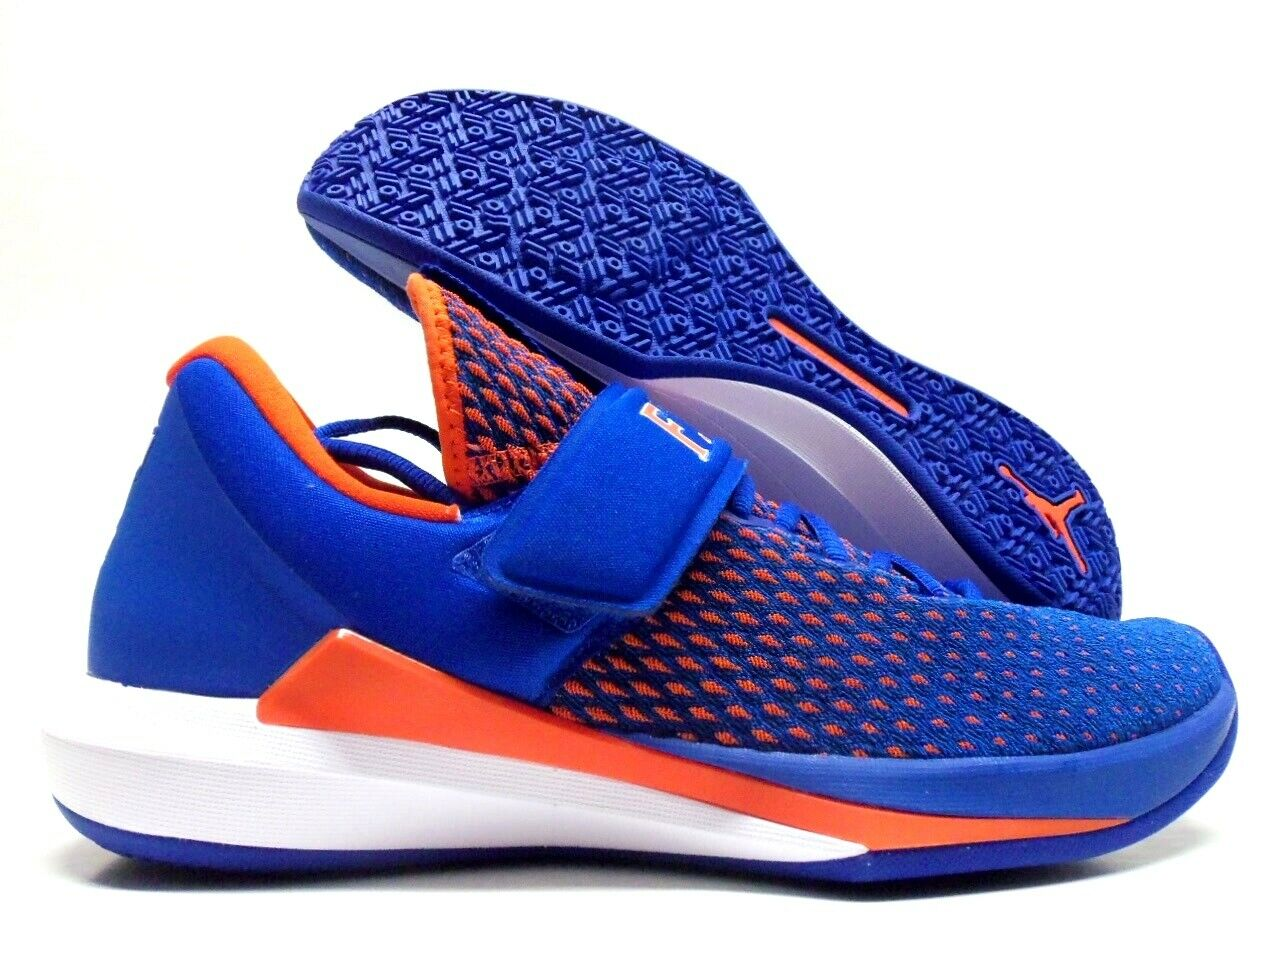 NIKE JORDAN TRAINER 3 FLORIDA GATORS GAME ROYAL orange SZ MEN'S 10 [AR1402-400]